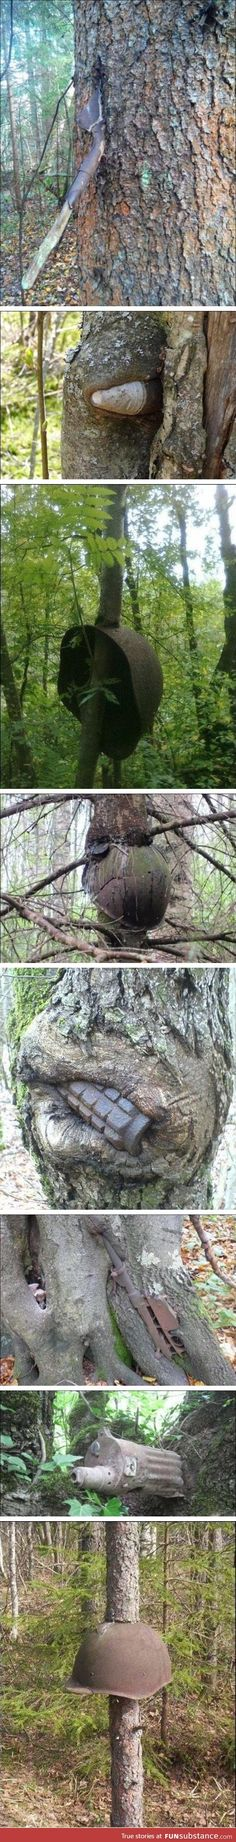 Trees that grew in a warzone